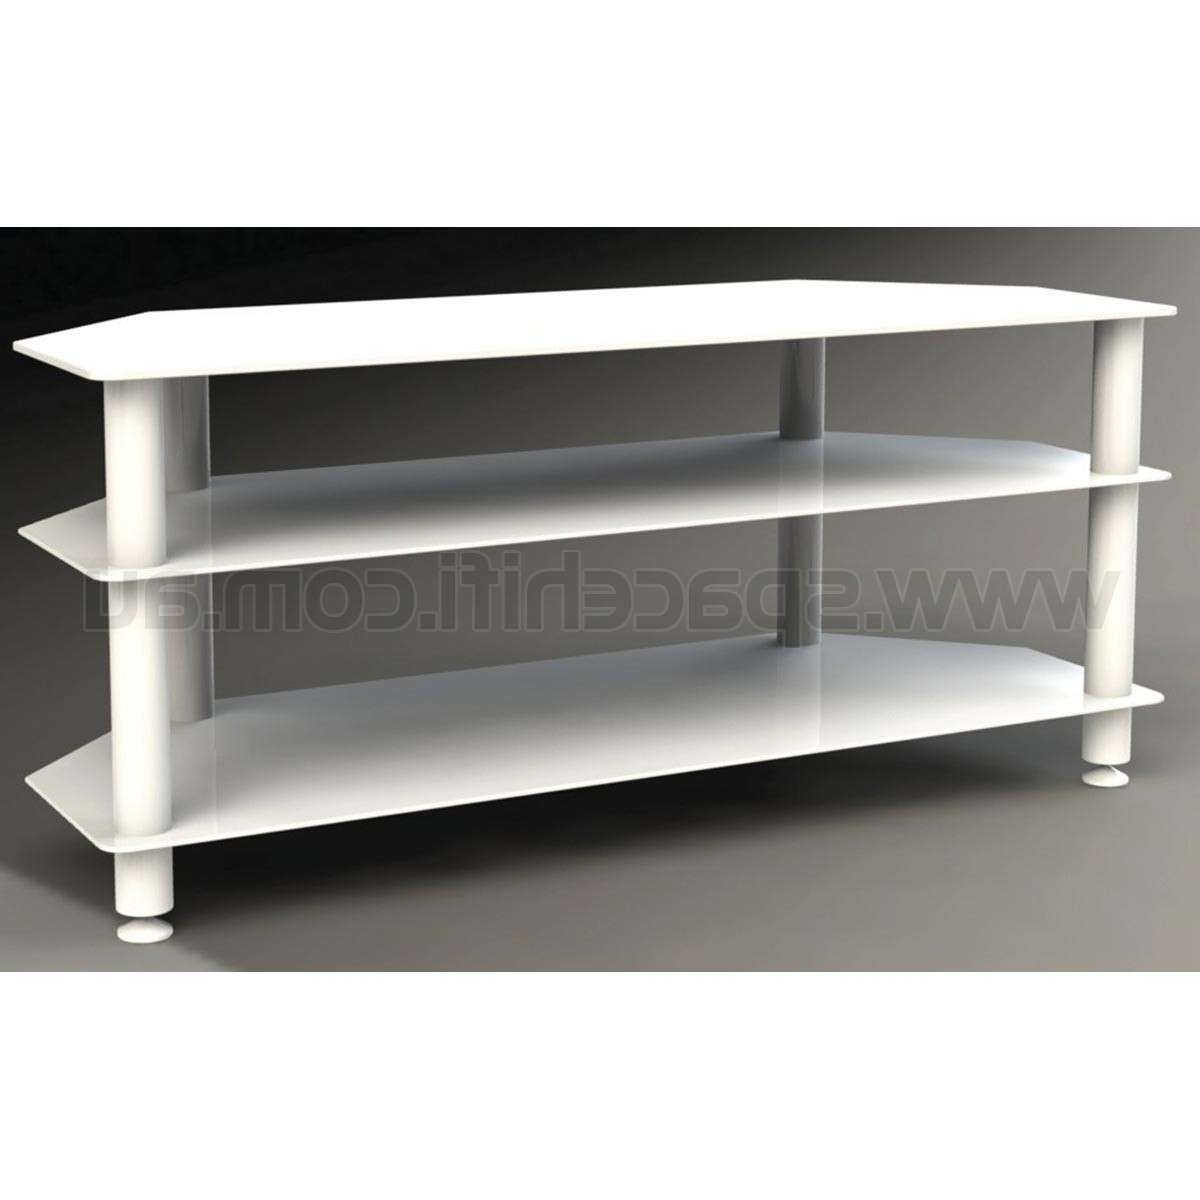 Tauris Ace 1200Mm 3 Shelf White Glass Tv Unit Stand | Space Hi Fi Intended For Glass Tv Cabinets (View 17 of 20)